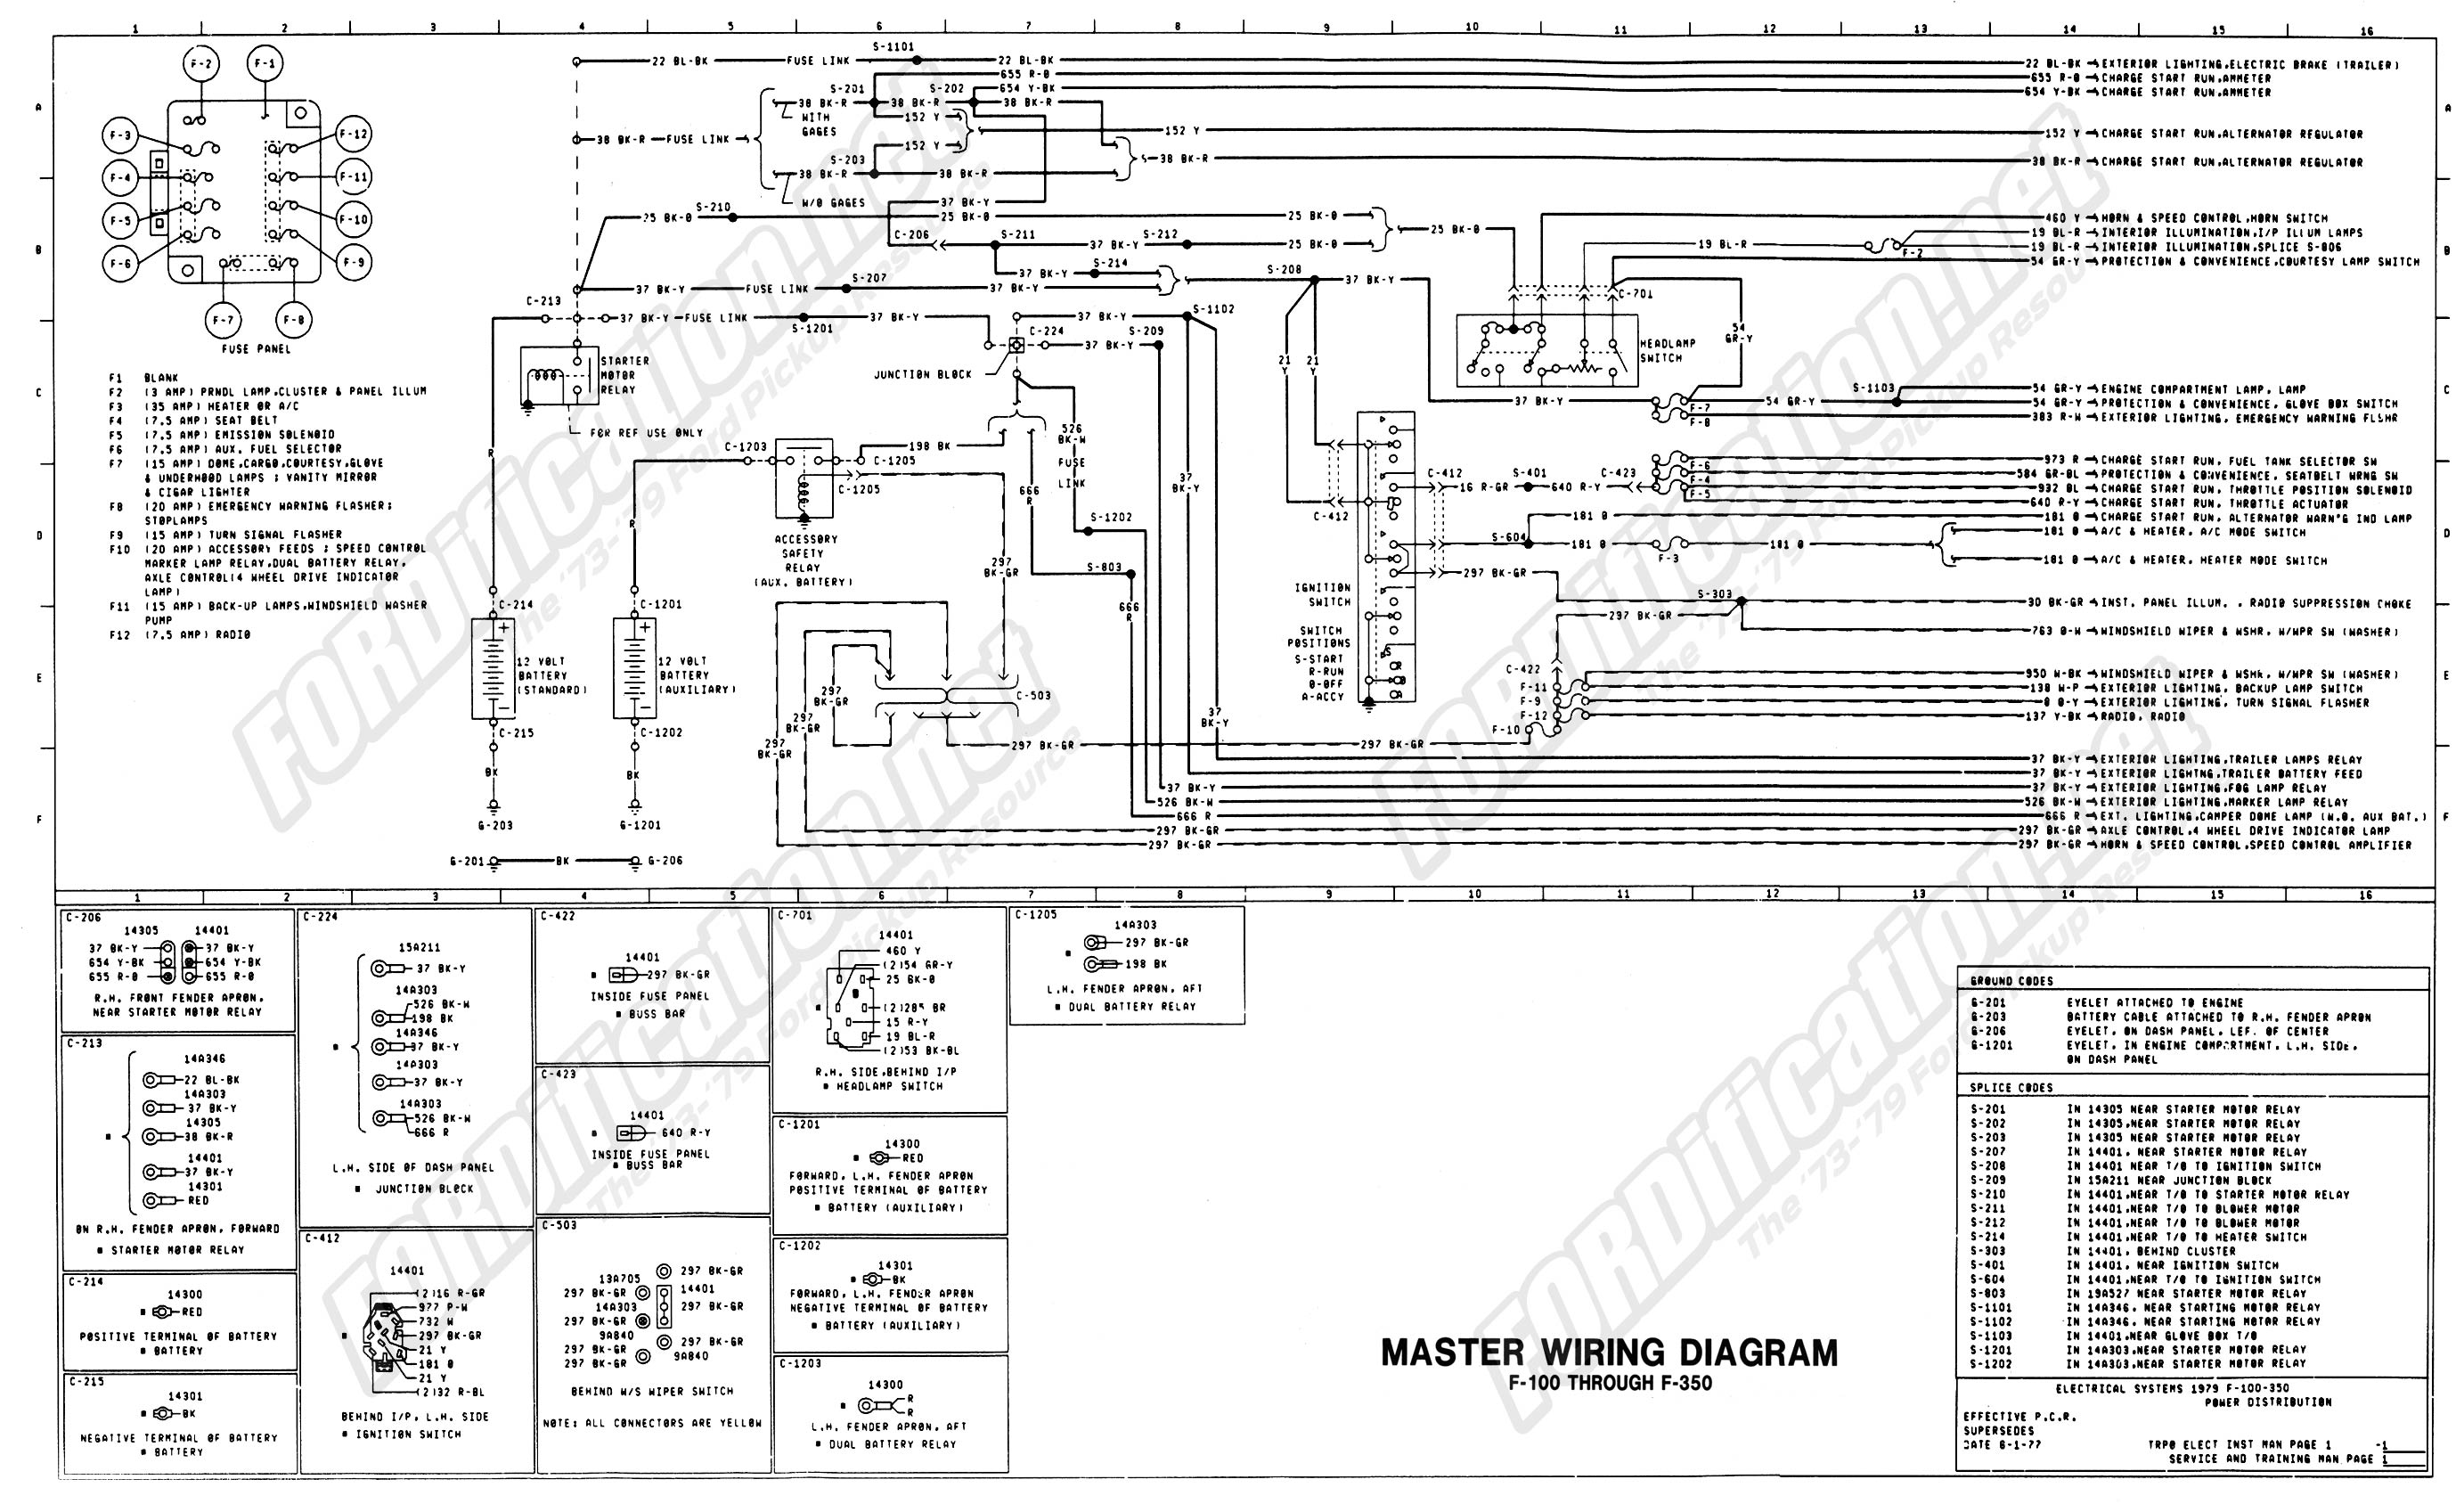 1979 f100 ignition switch wiring diagram positions